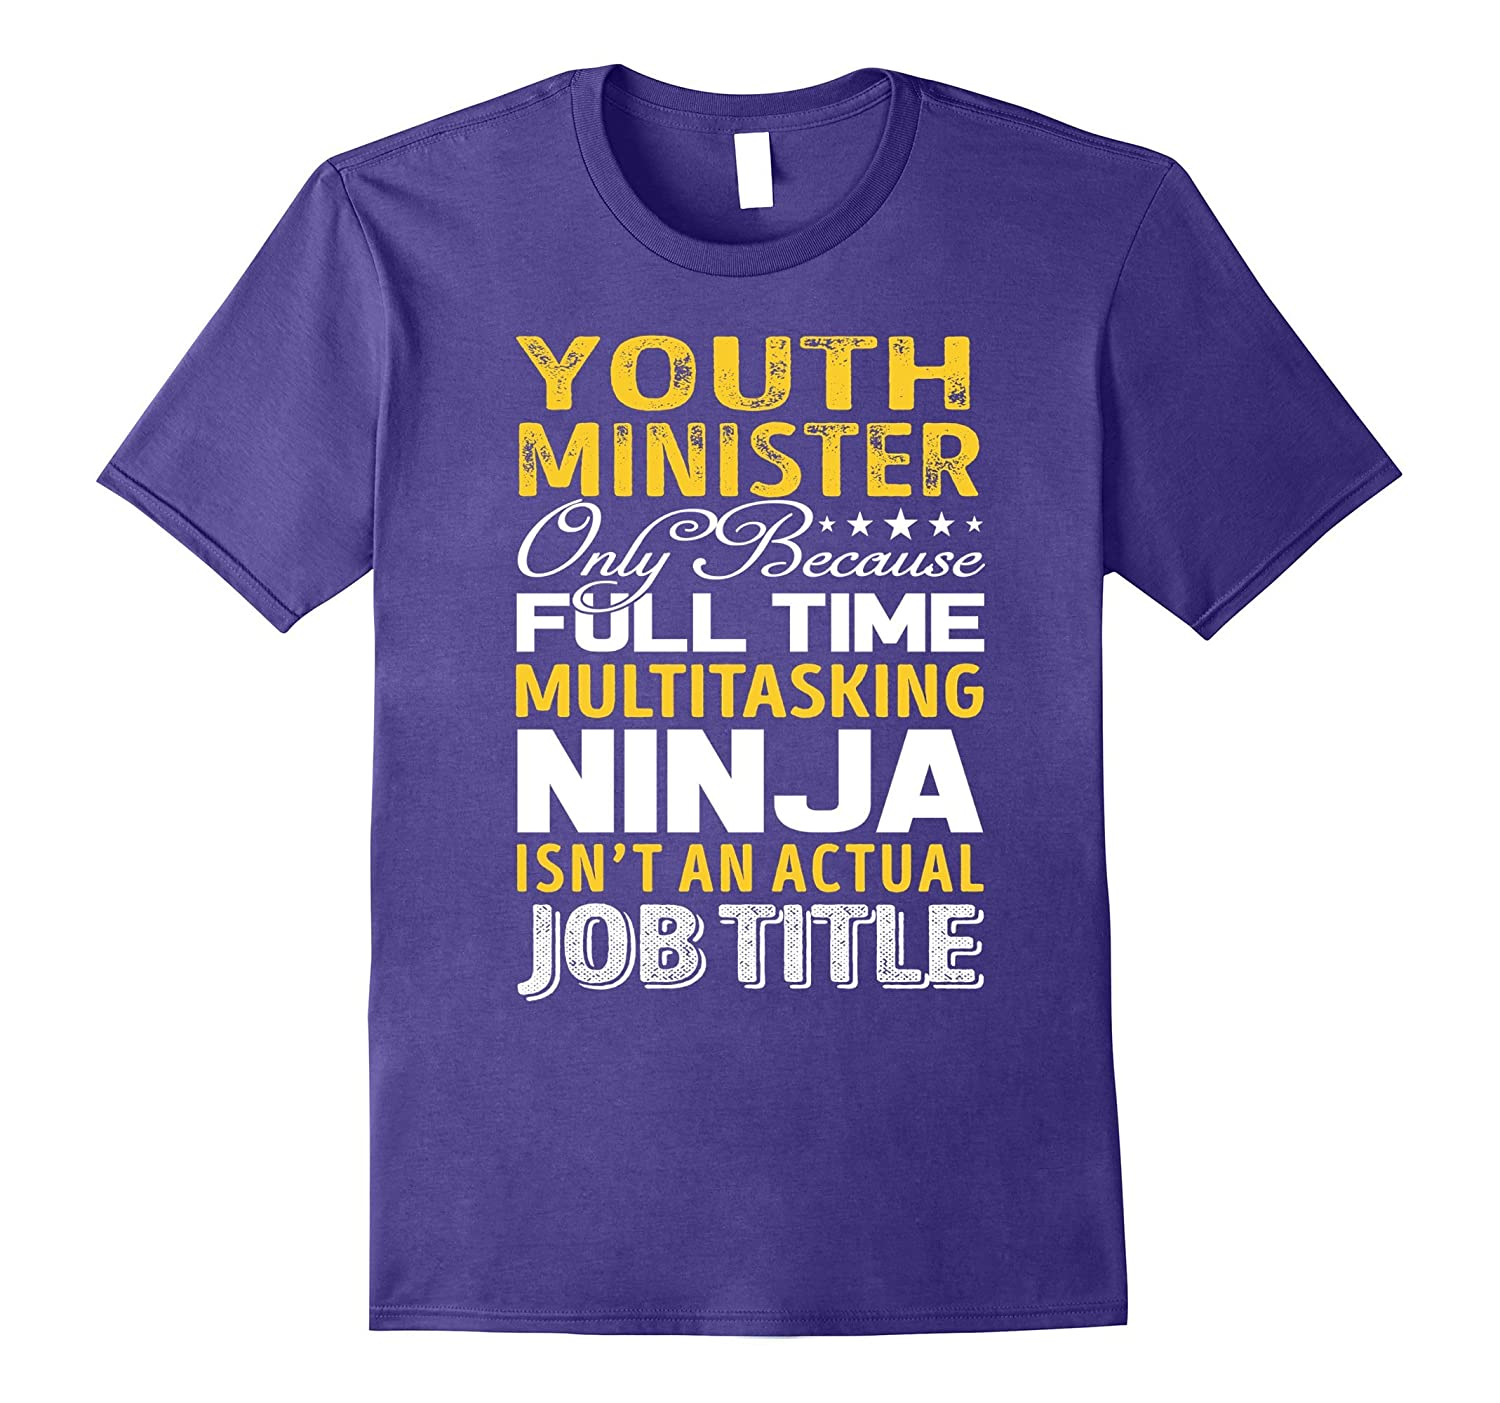 Youth Minister Is Not An Actual Job Title TShirt-TJ